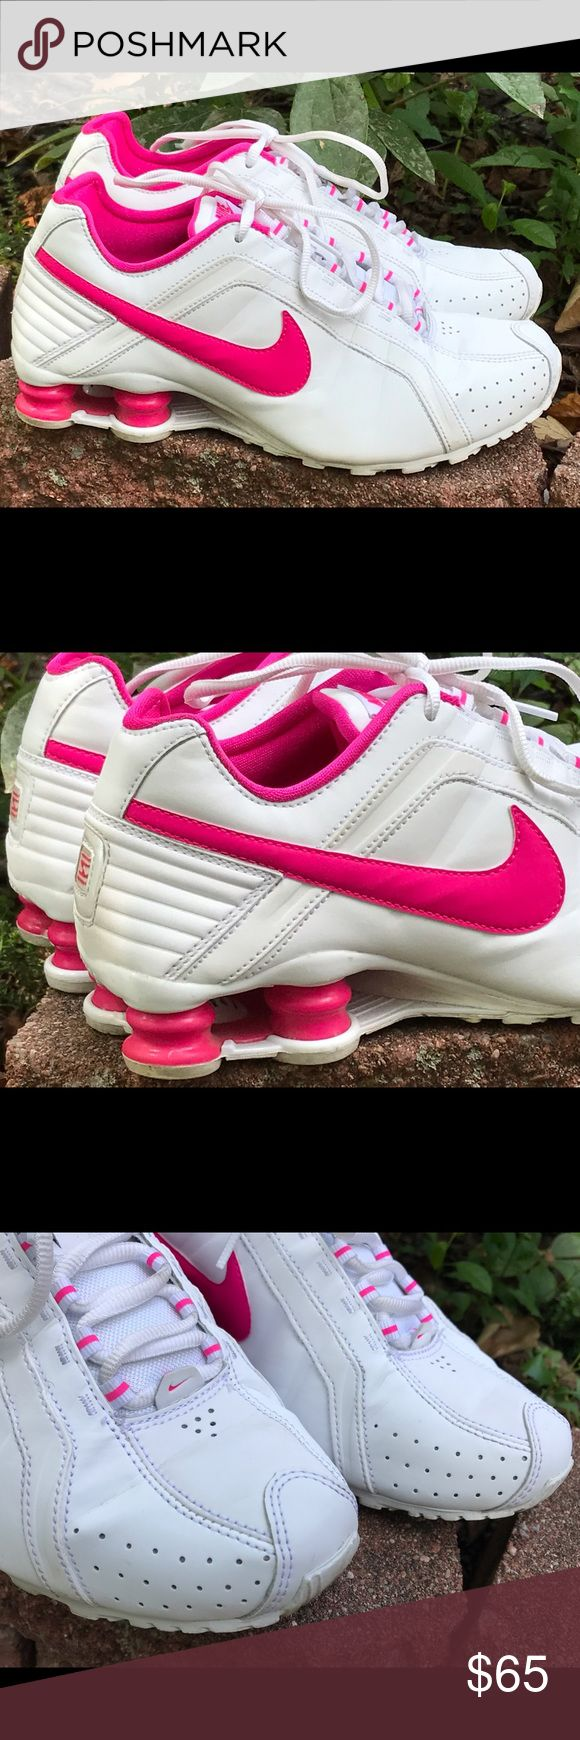 Nike 'Shox Junior' pink white sneakers women's 7.5 Excellent condition. Very lightly worn. From smoke-free home. Womens size 7.5. Nike Shoes Sneakers